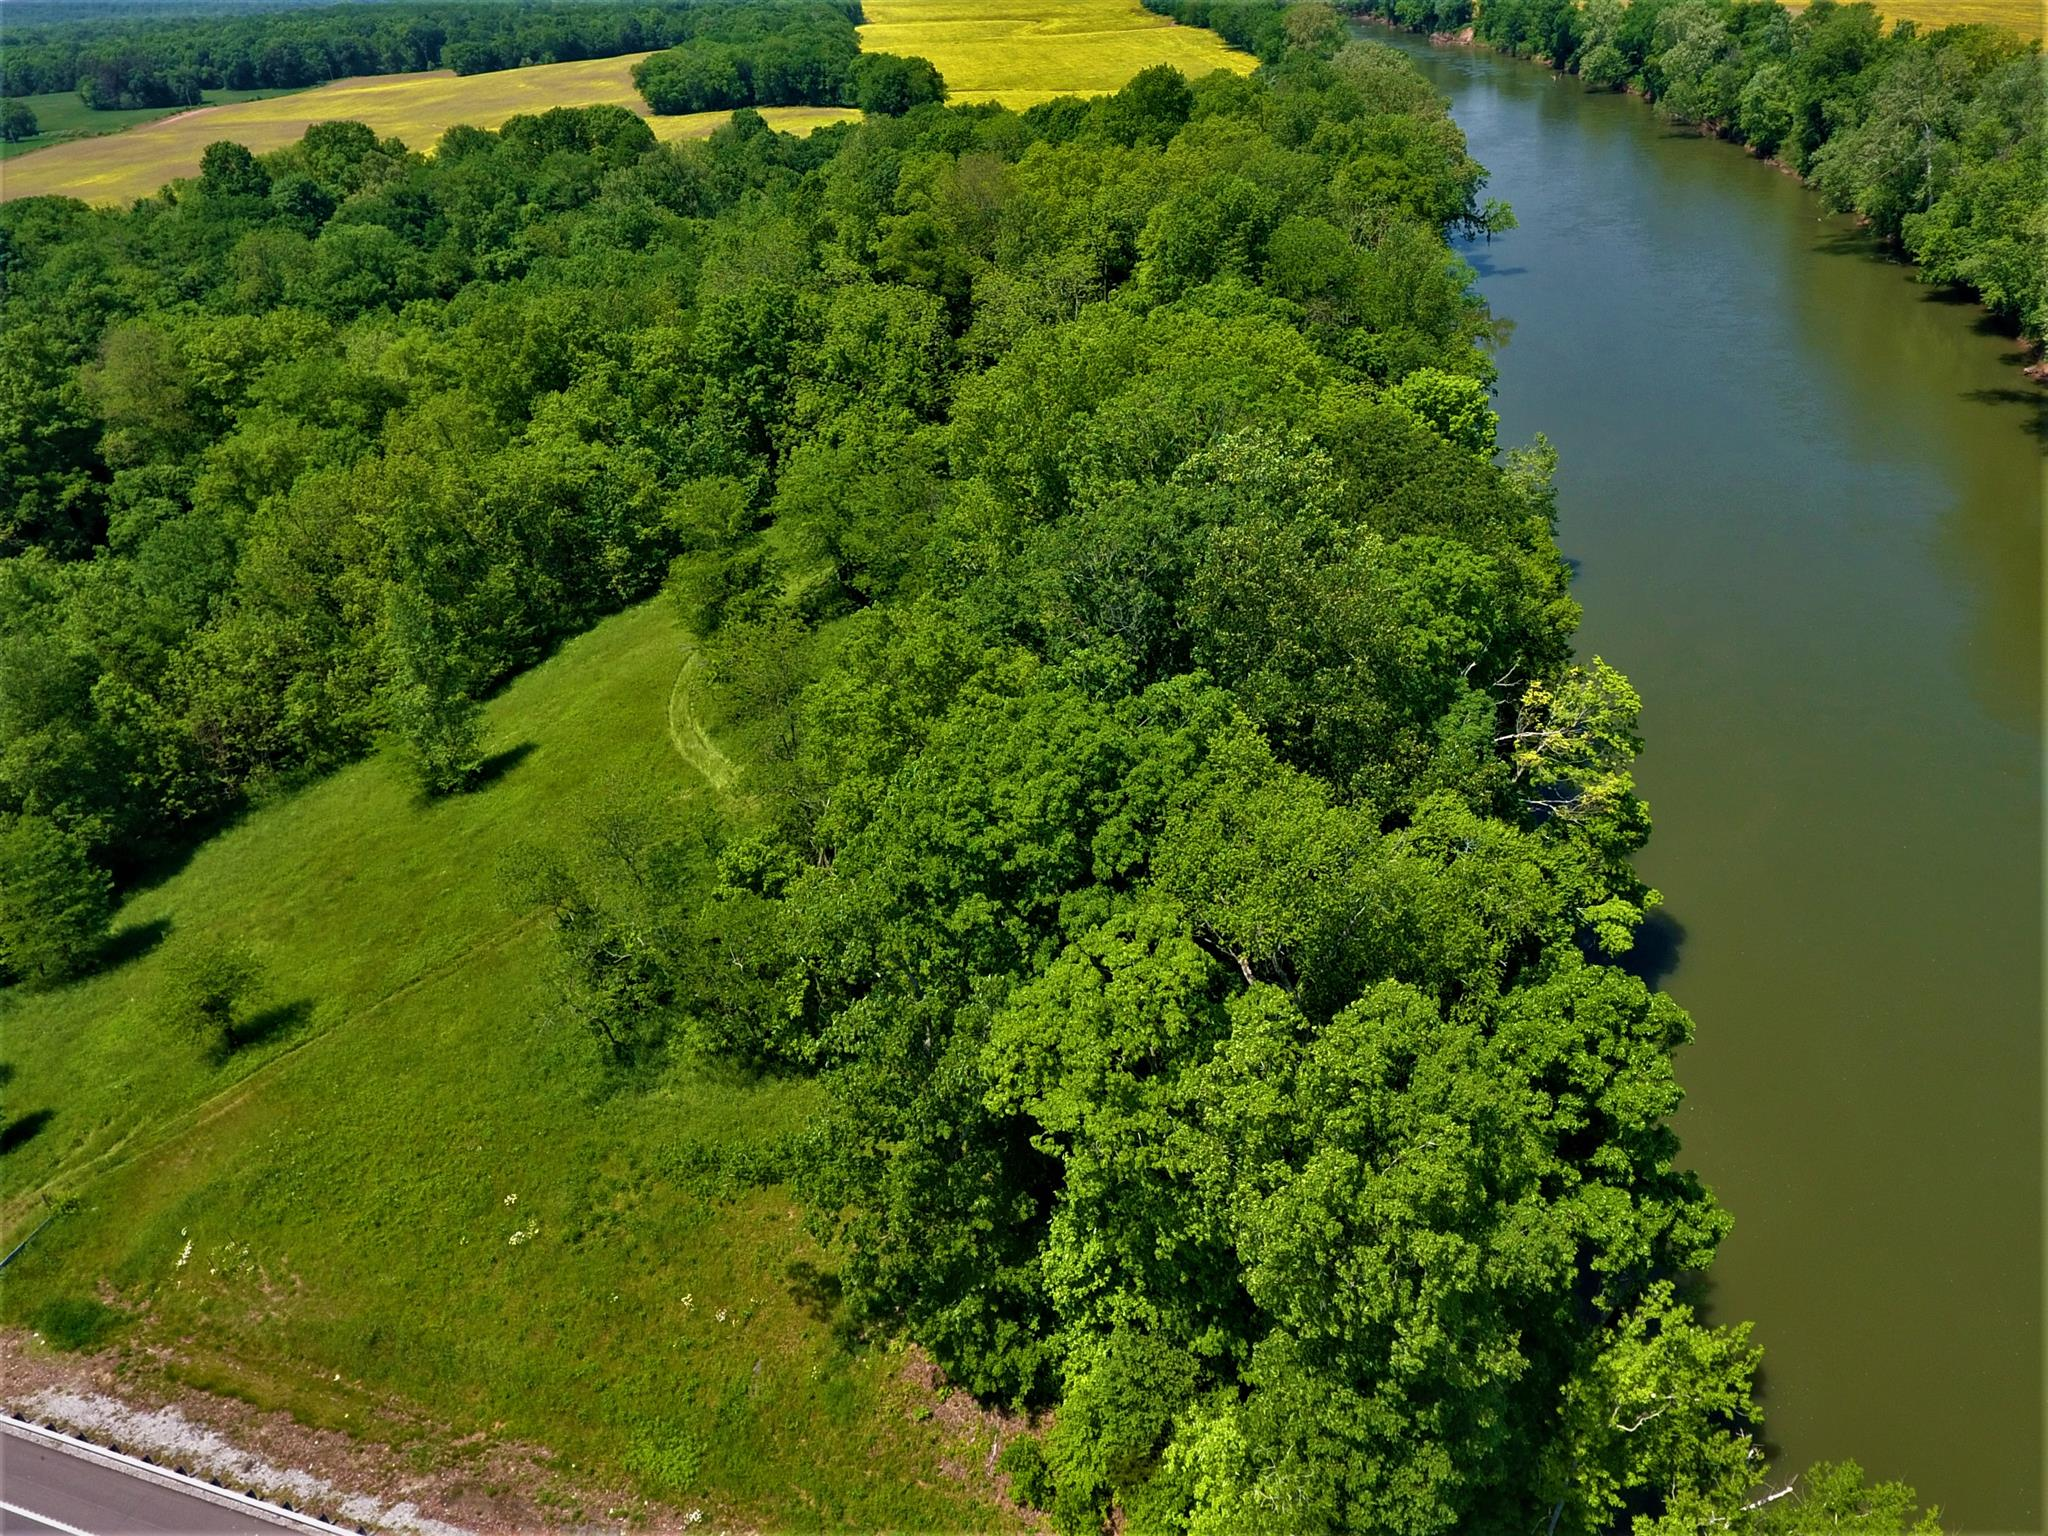 0 Highway 13 S, Waverly, TN 37185 - Waverly, TN real estate listing